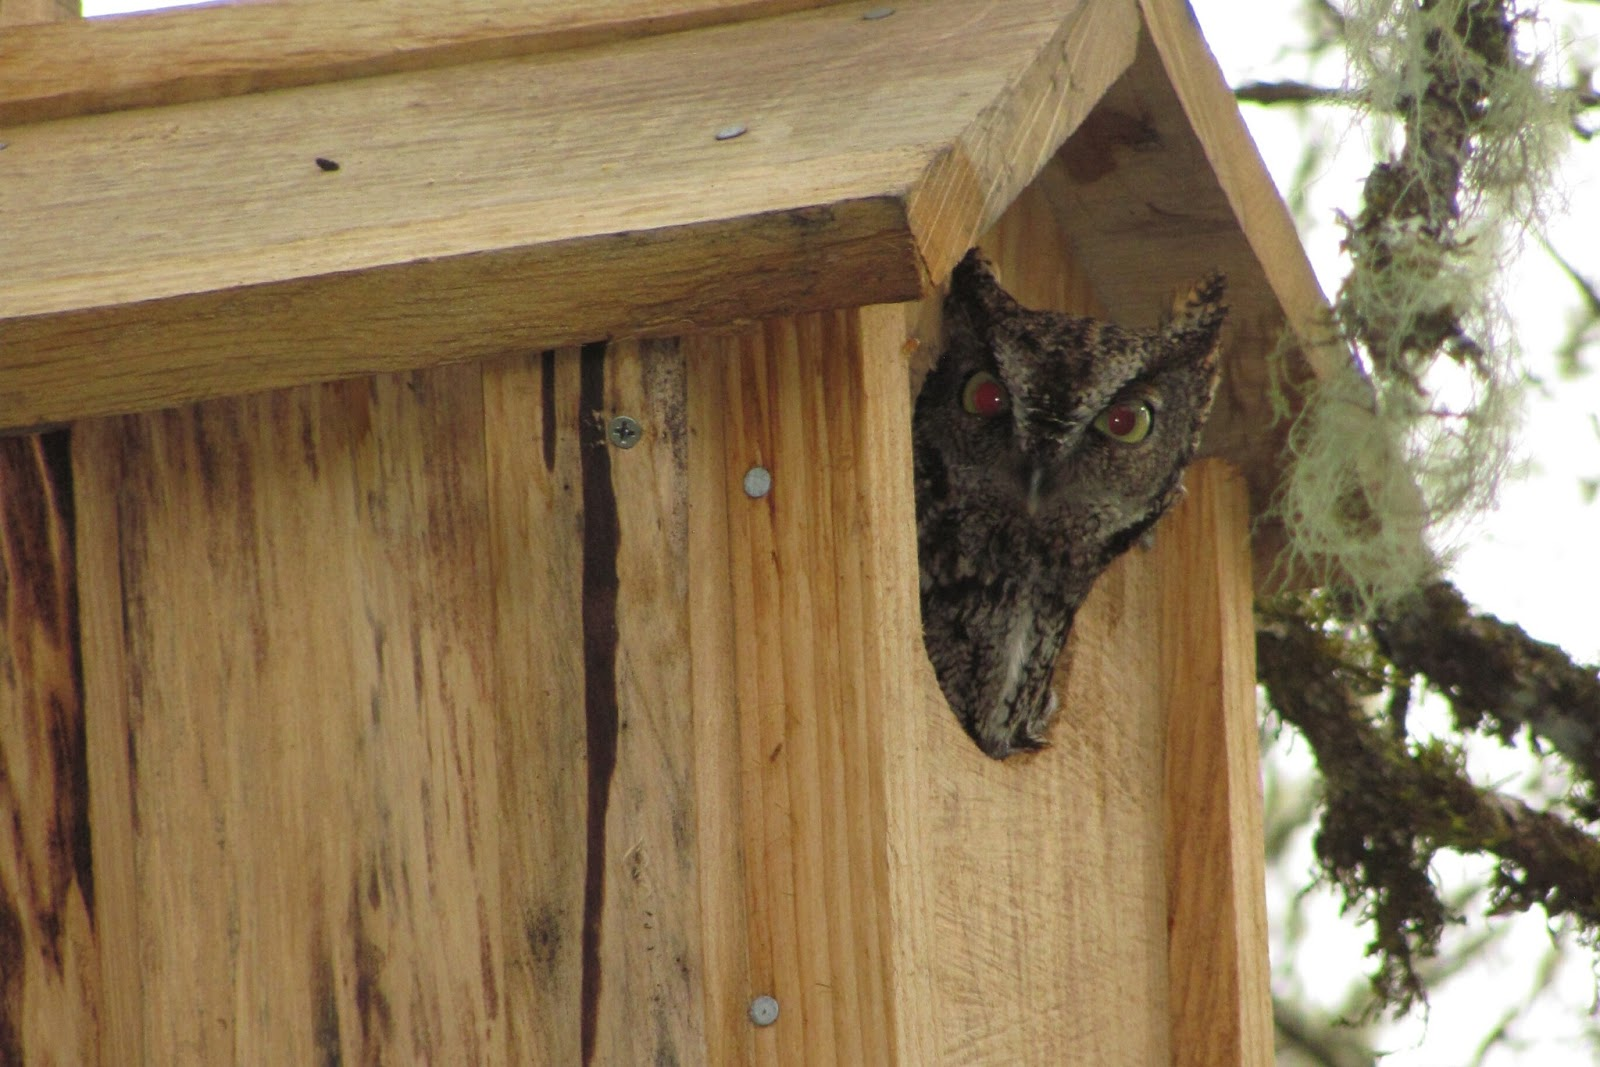 The good life: Bird houses and owls